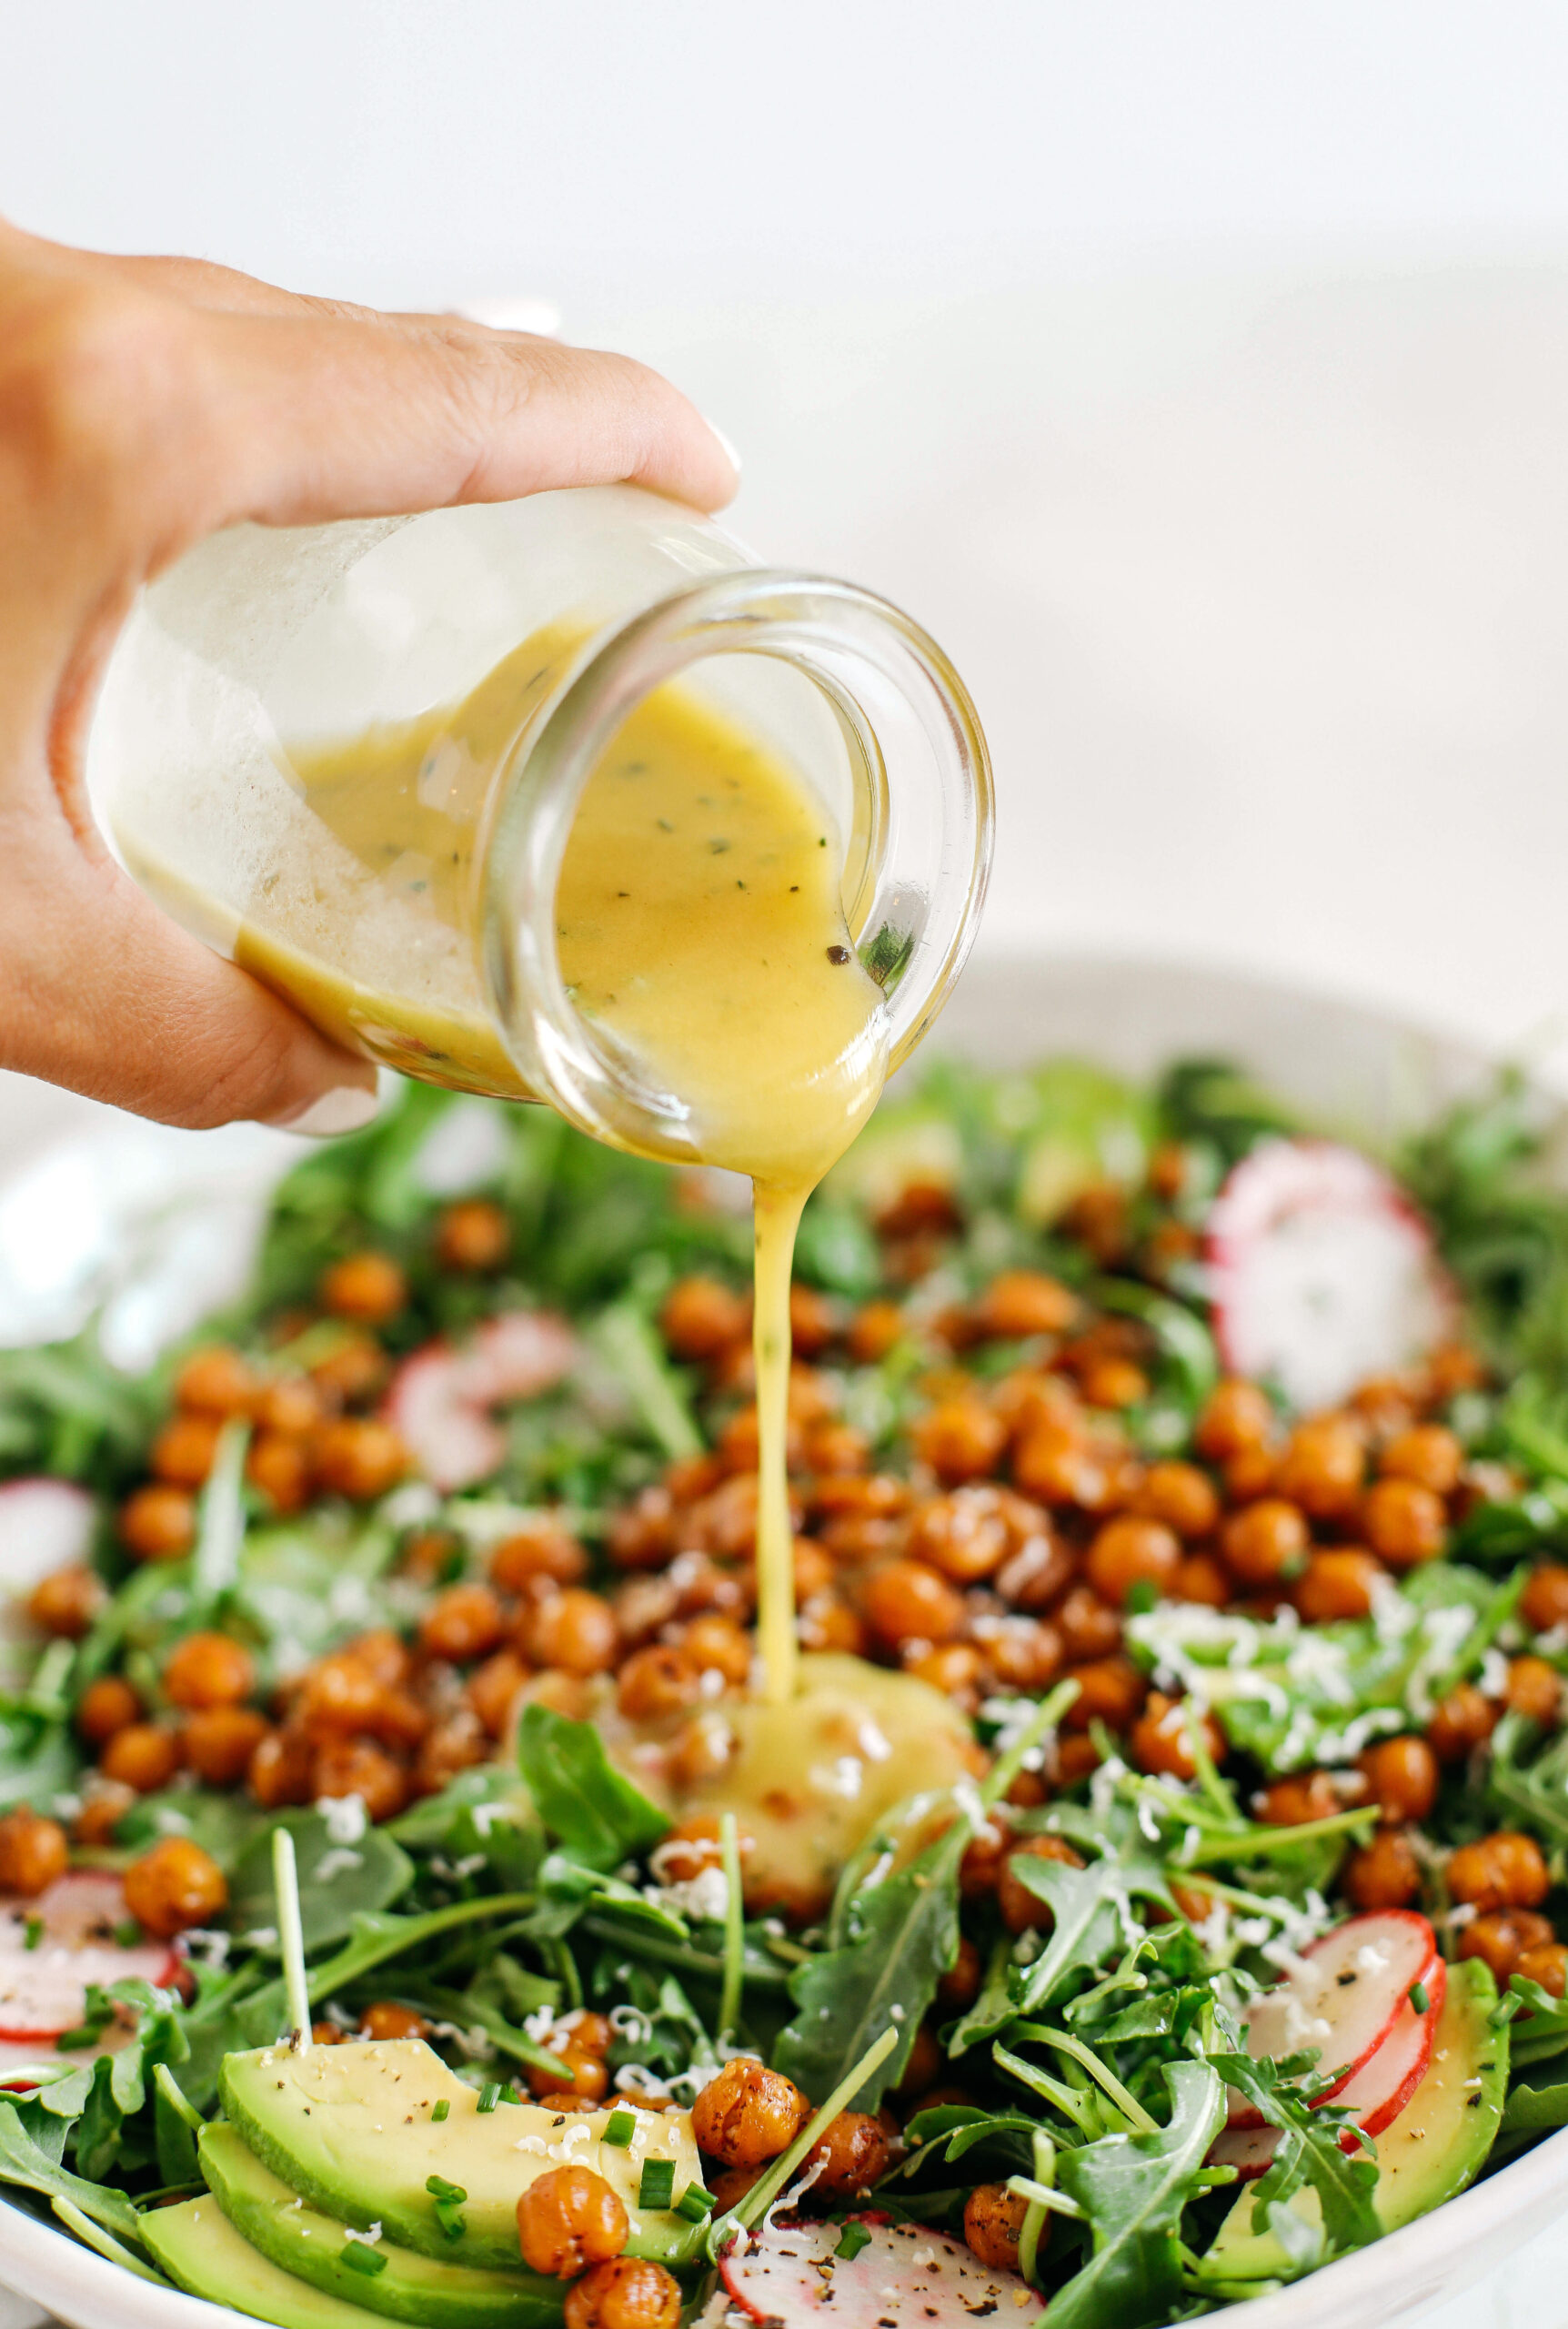 The most delicious Arugula Salad with Honey Roasted Chickpeas that are sweet, savory and perfectly crunchy! Top with fresh veggies, avocado slices and my lemon dijon herb dressing!